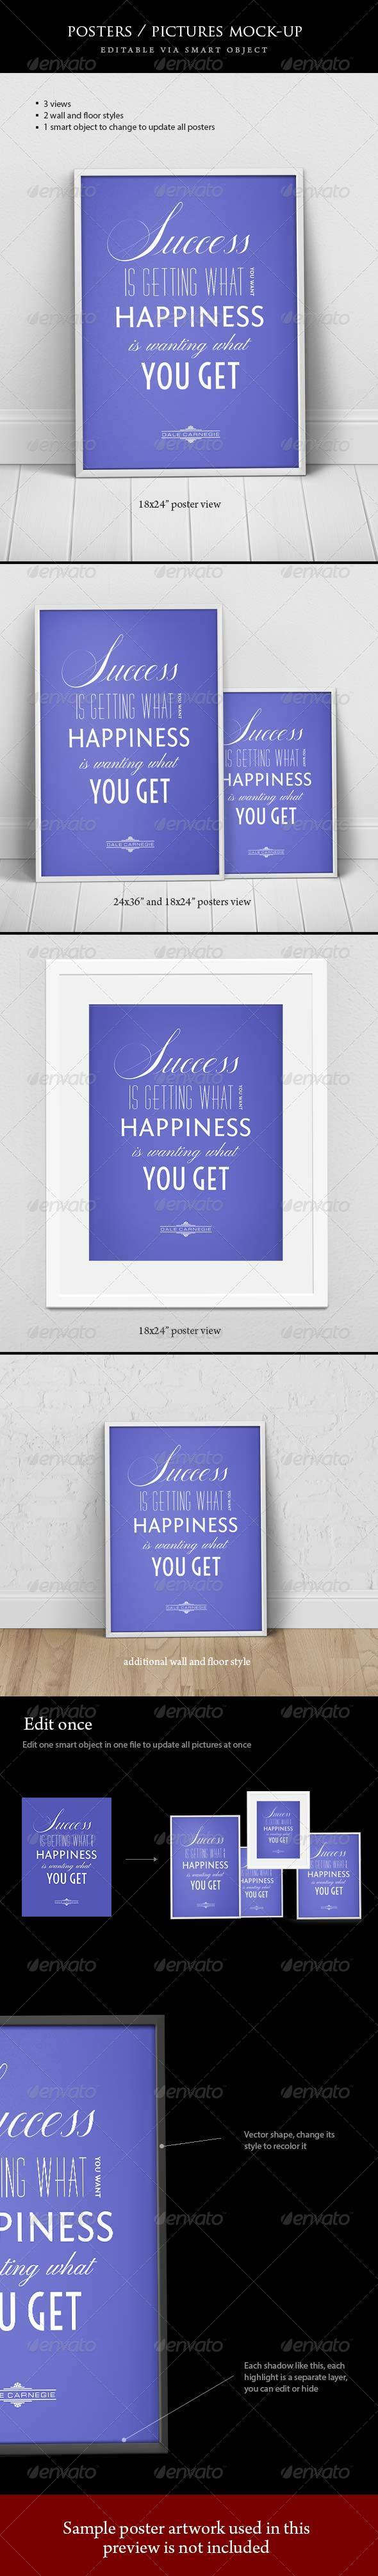 Poster / Picture mock-ups - Posters Print